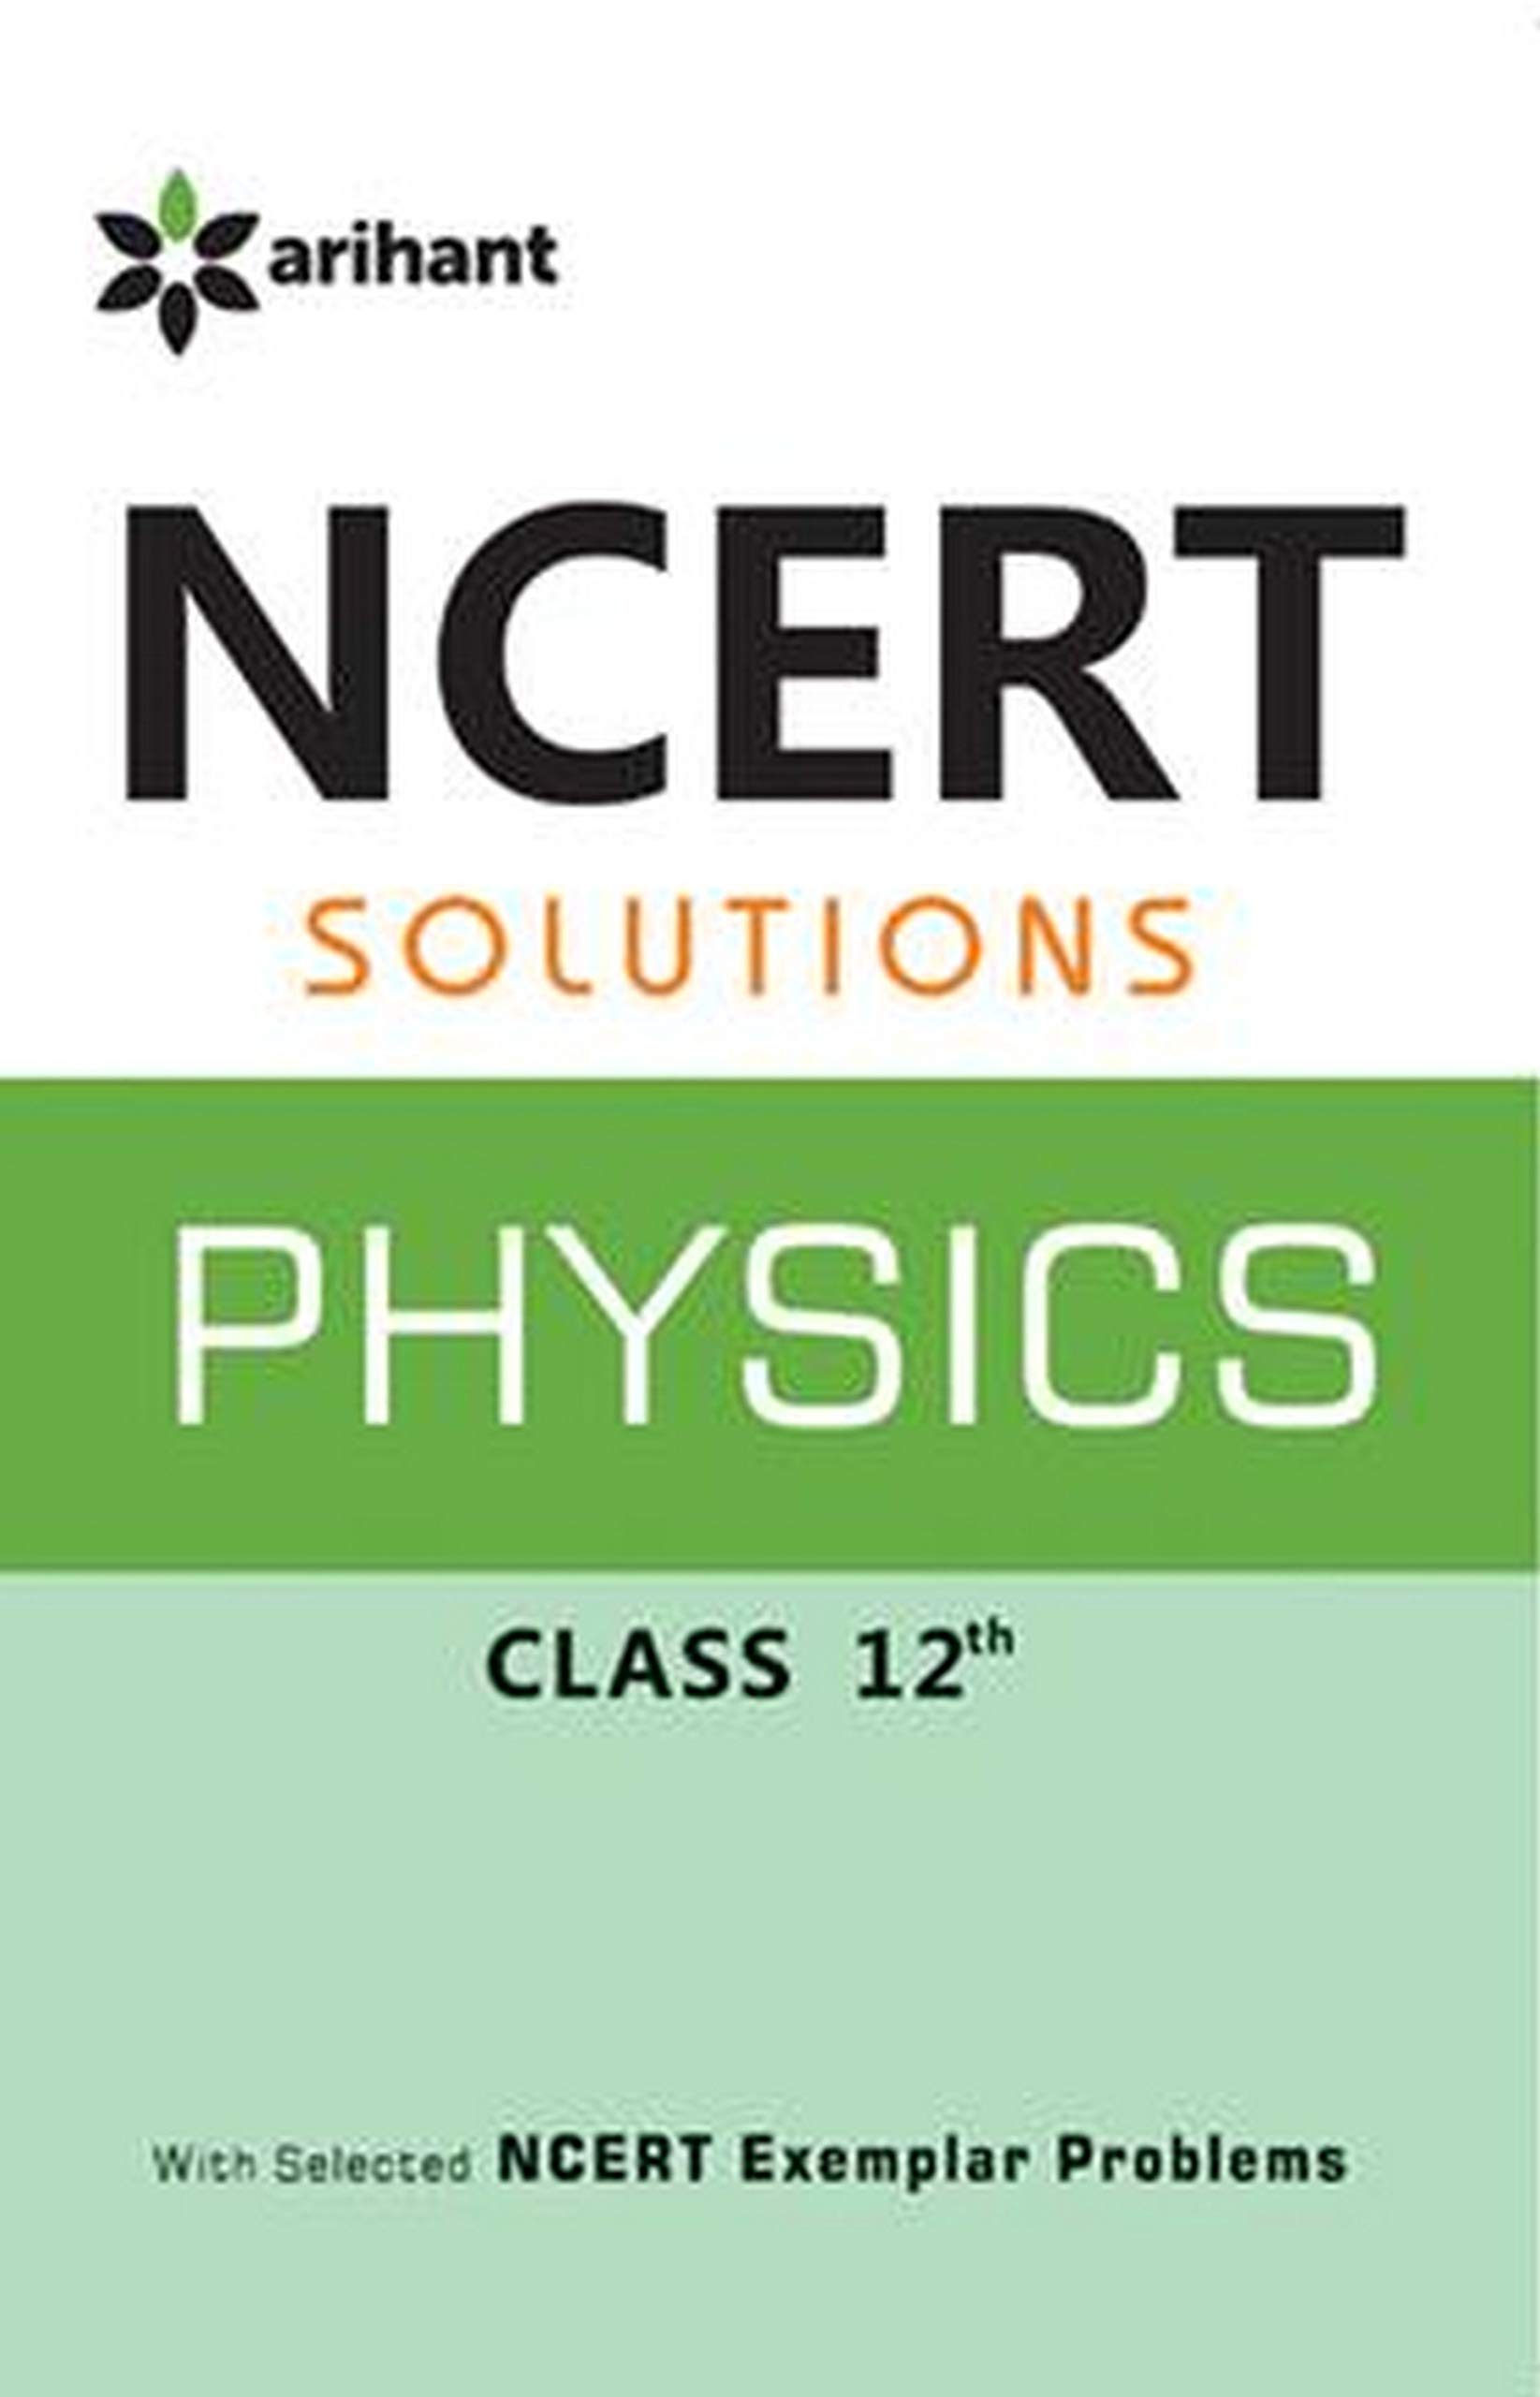 NCERT Solutions Physics 12th: Amazon in: Nidhi Goel: Books